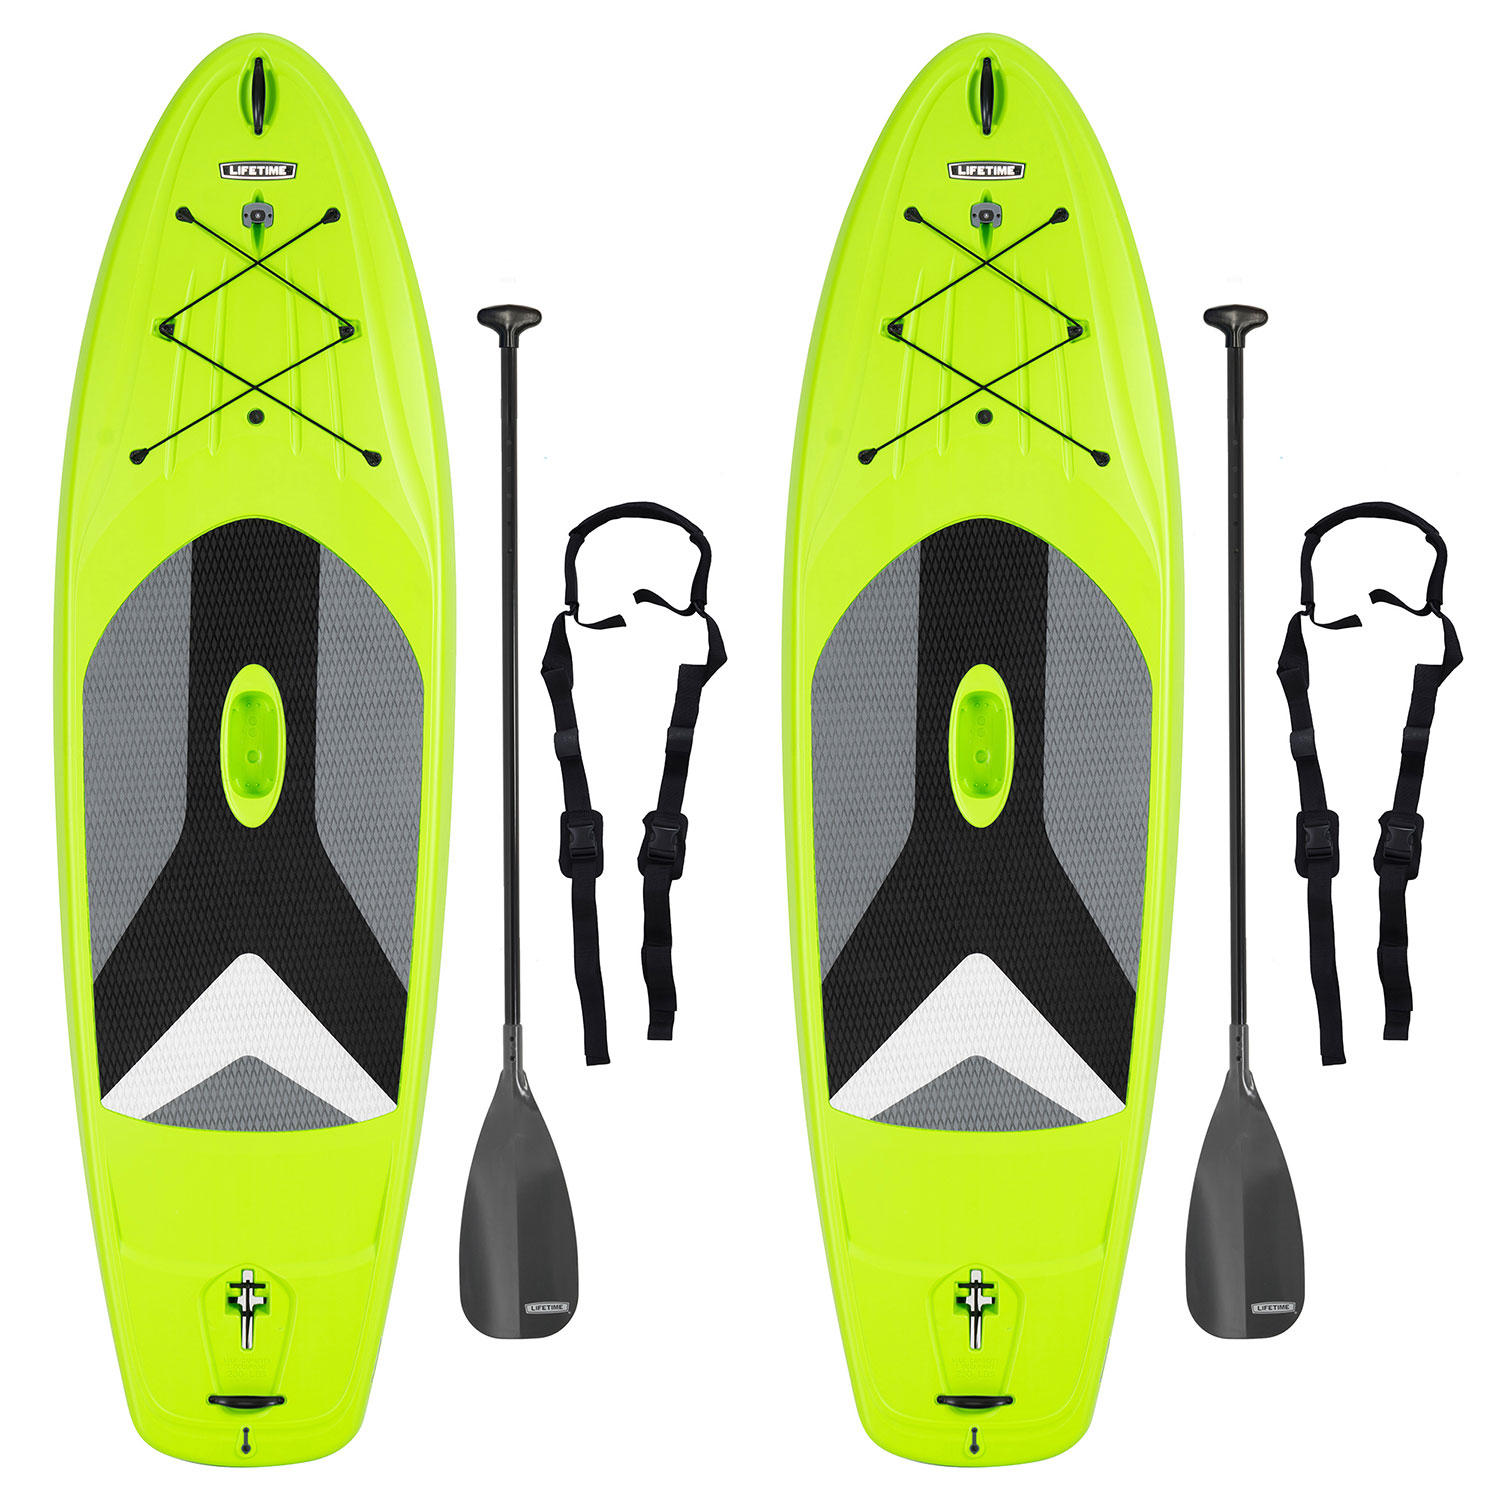 2-Pack Lifetime Horizon 10' Stand-Up Paddleboard